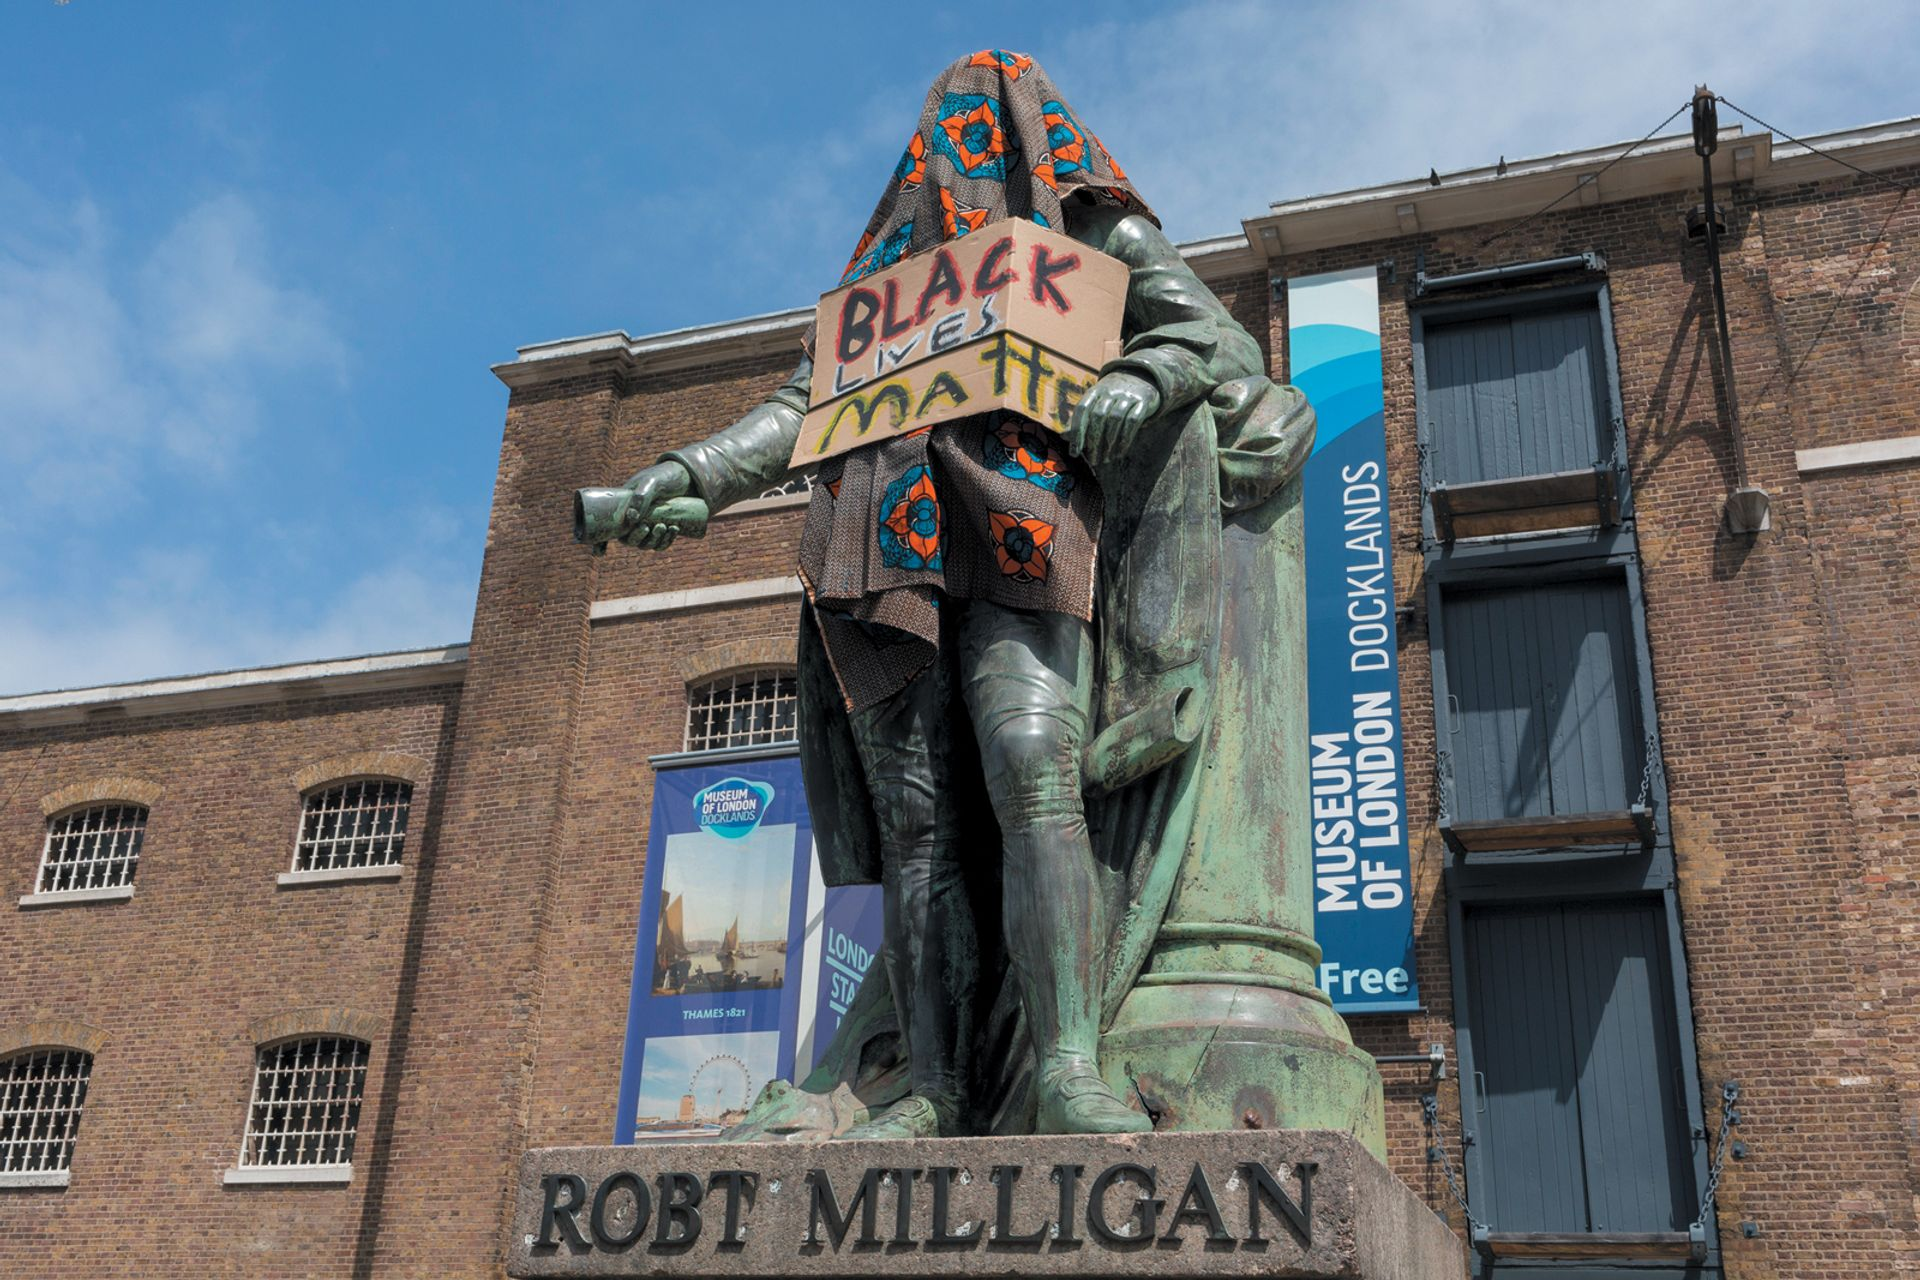 The controversial statue of slave trader Robert Milligan was removed from outside the Museum of London Docklands following the Black Lives Matter protests Photo: © Richard Baker / In Pictures via Getty Images